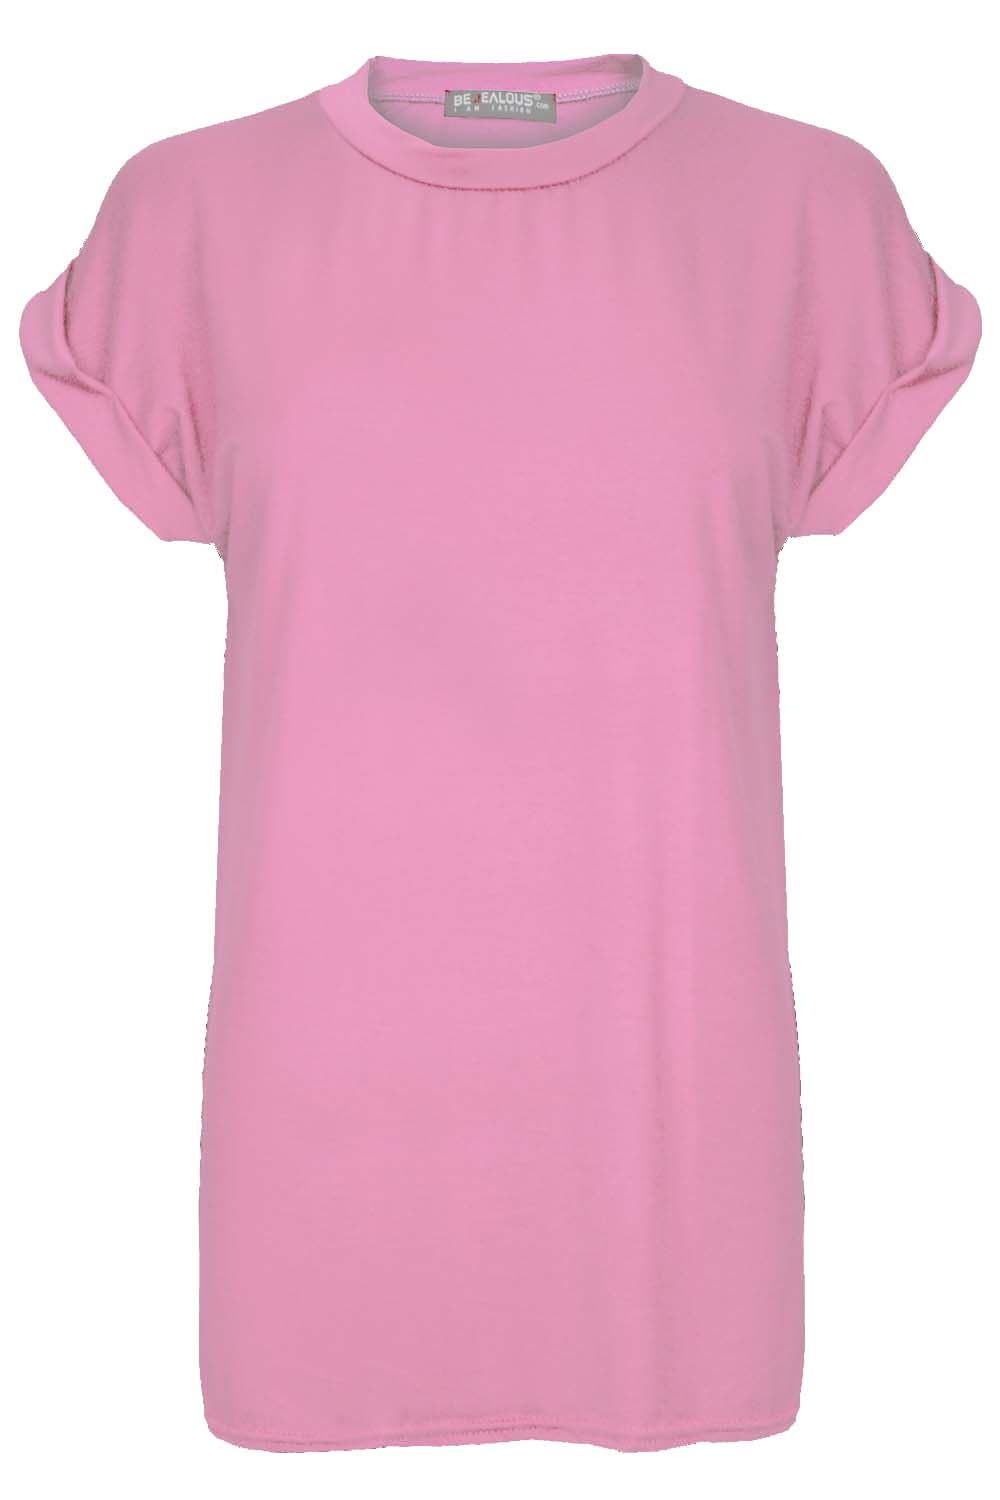 Online shopping for popular & hot Baggy Tops for Women from Women's Clothing & Accessories, Blouses & Shirts, Tank Tops, T-Shirts and more related Baggy Tops for Women like sweatshirt with shorts women, womens sport cotton tops, cotton mens shorts, womens fashion shorts xs. Discover over of the best Selection Baggy Tops for Women on heresfilmz8.ga